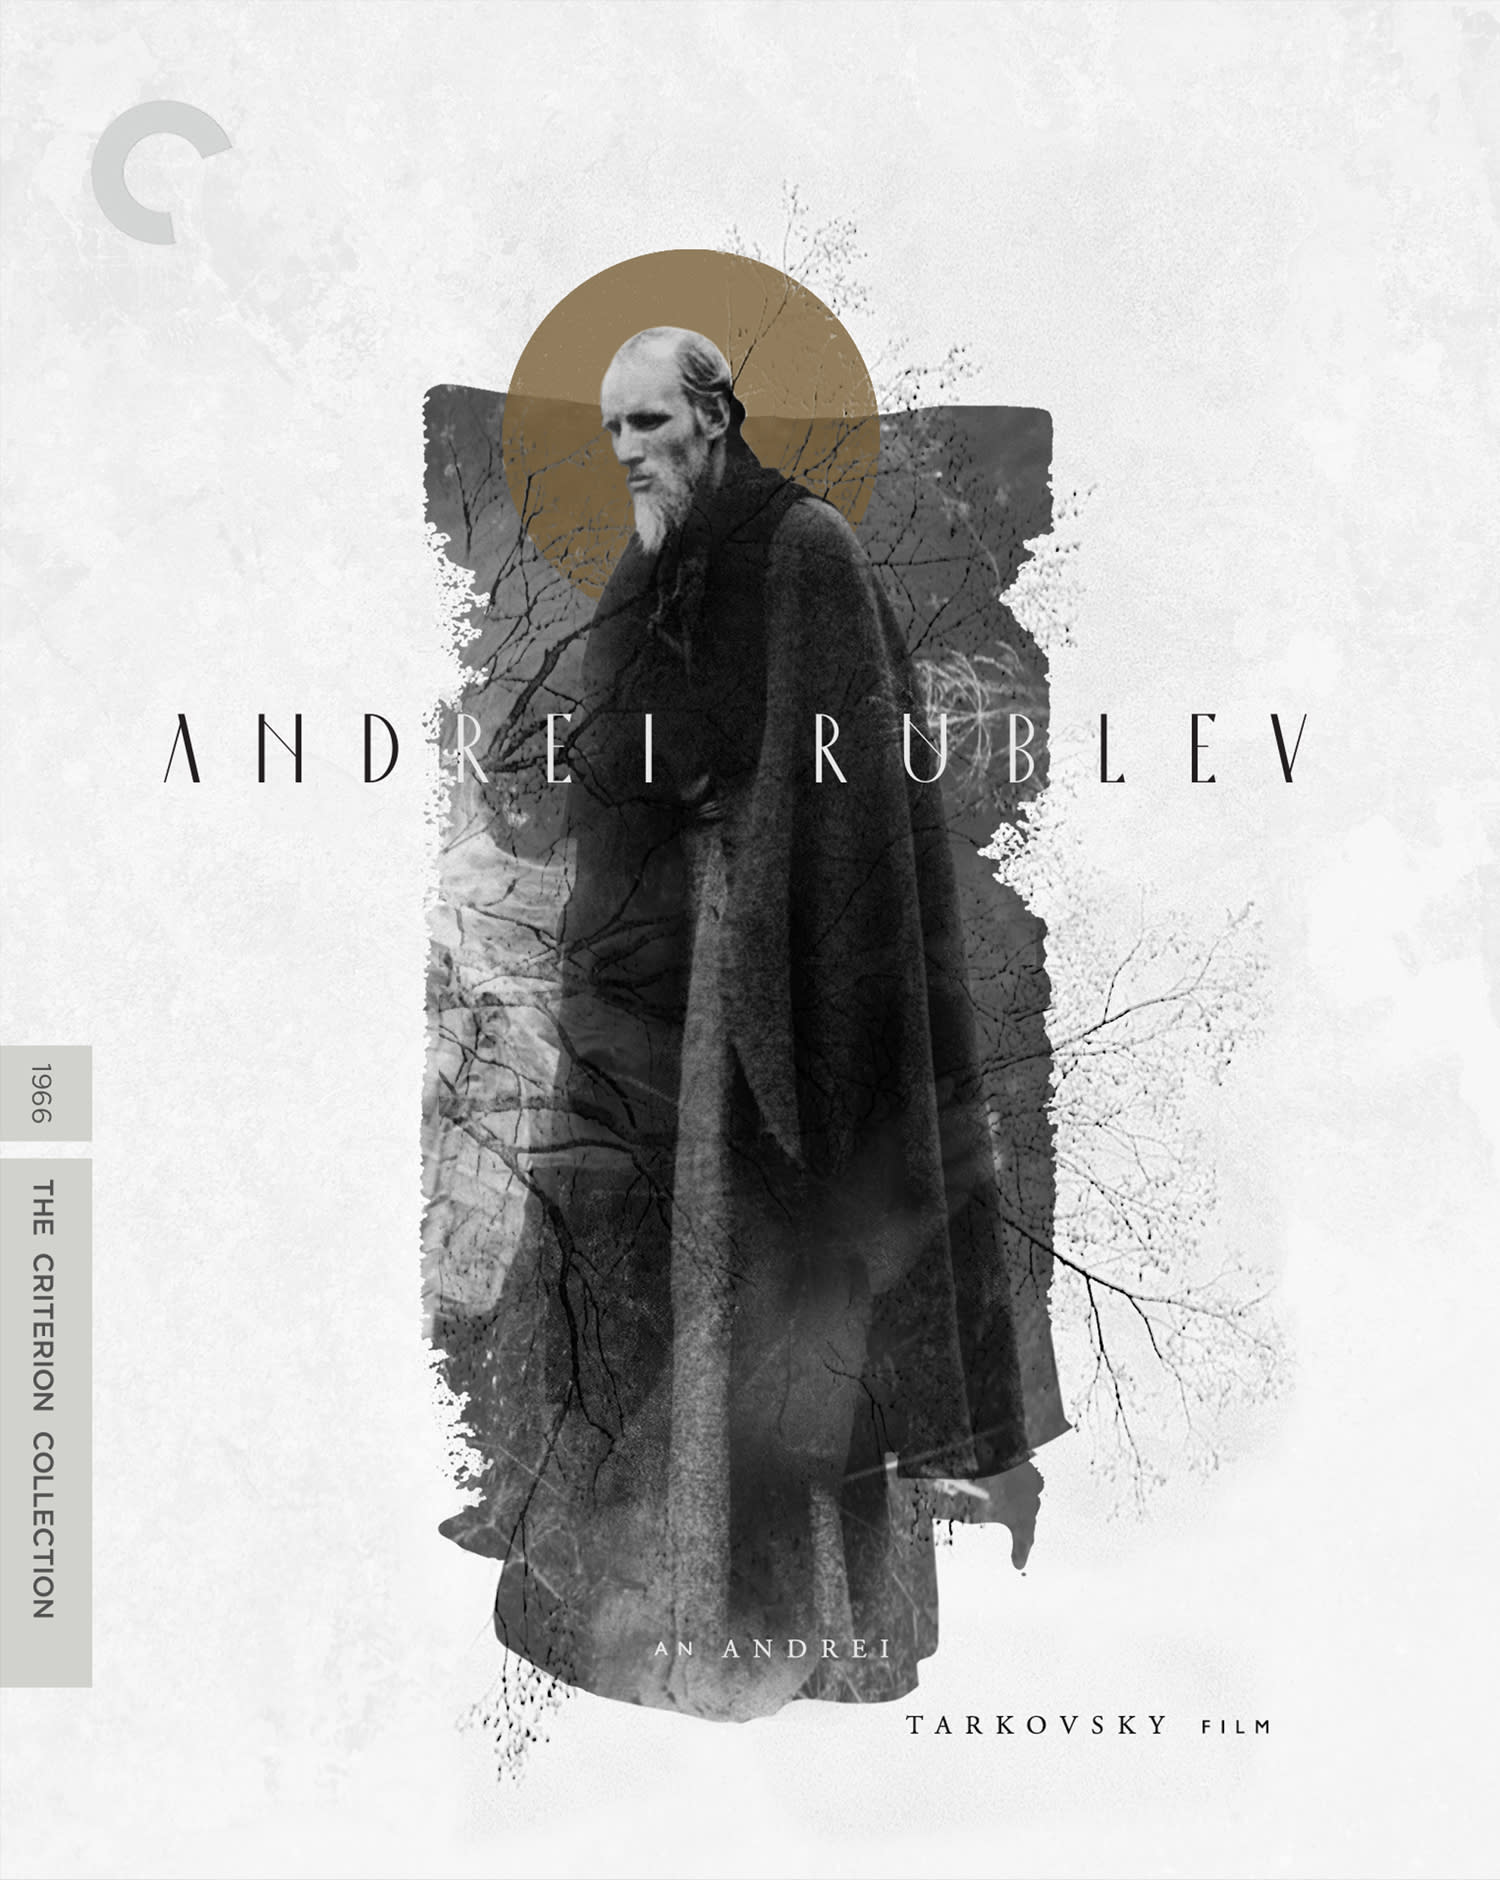 Andrei Rublev —The Criterion Collection